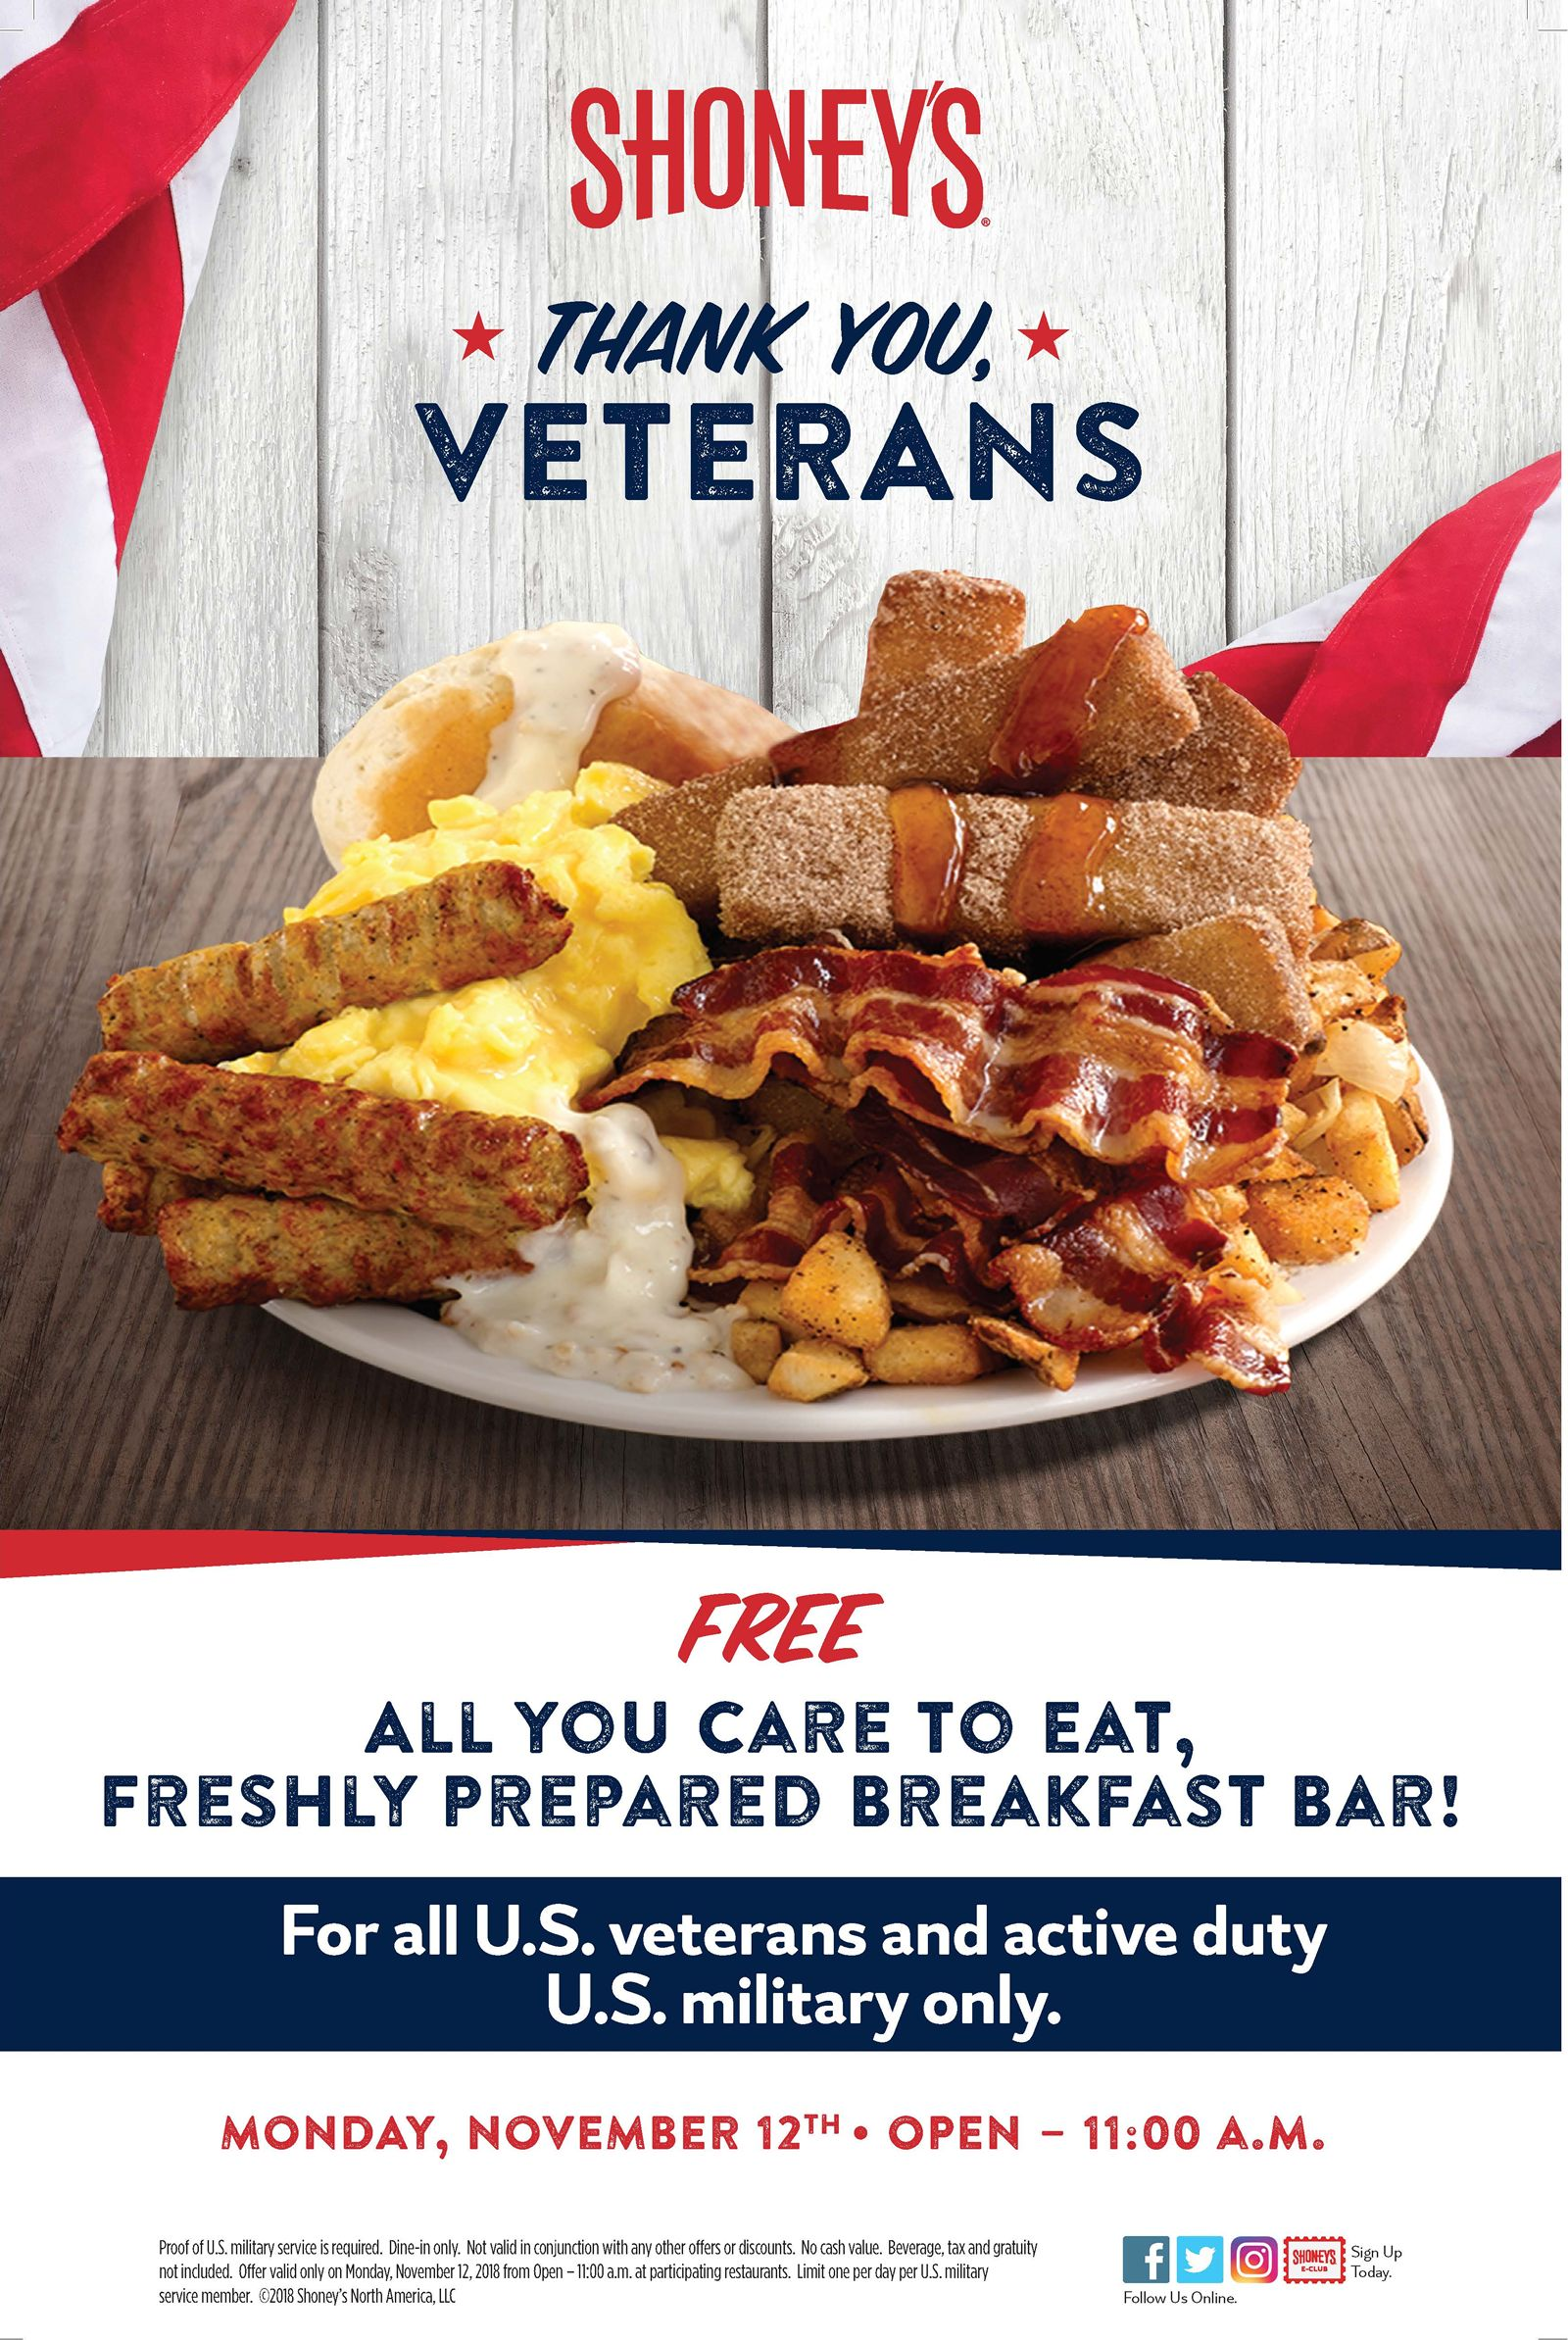 Shoneys Offers Free All You Care To Eat Freshly Prepared Breakfast